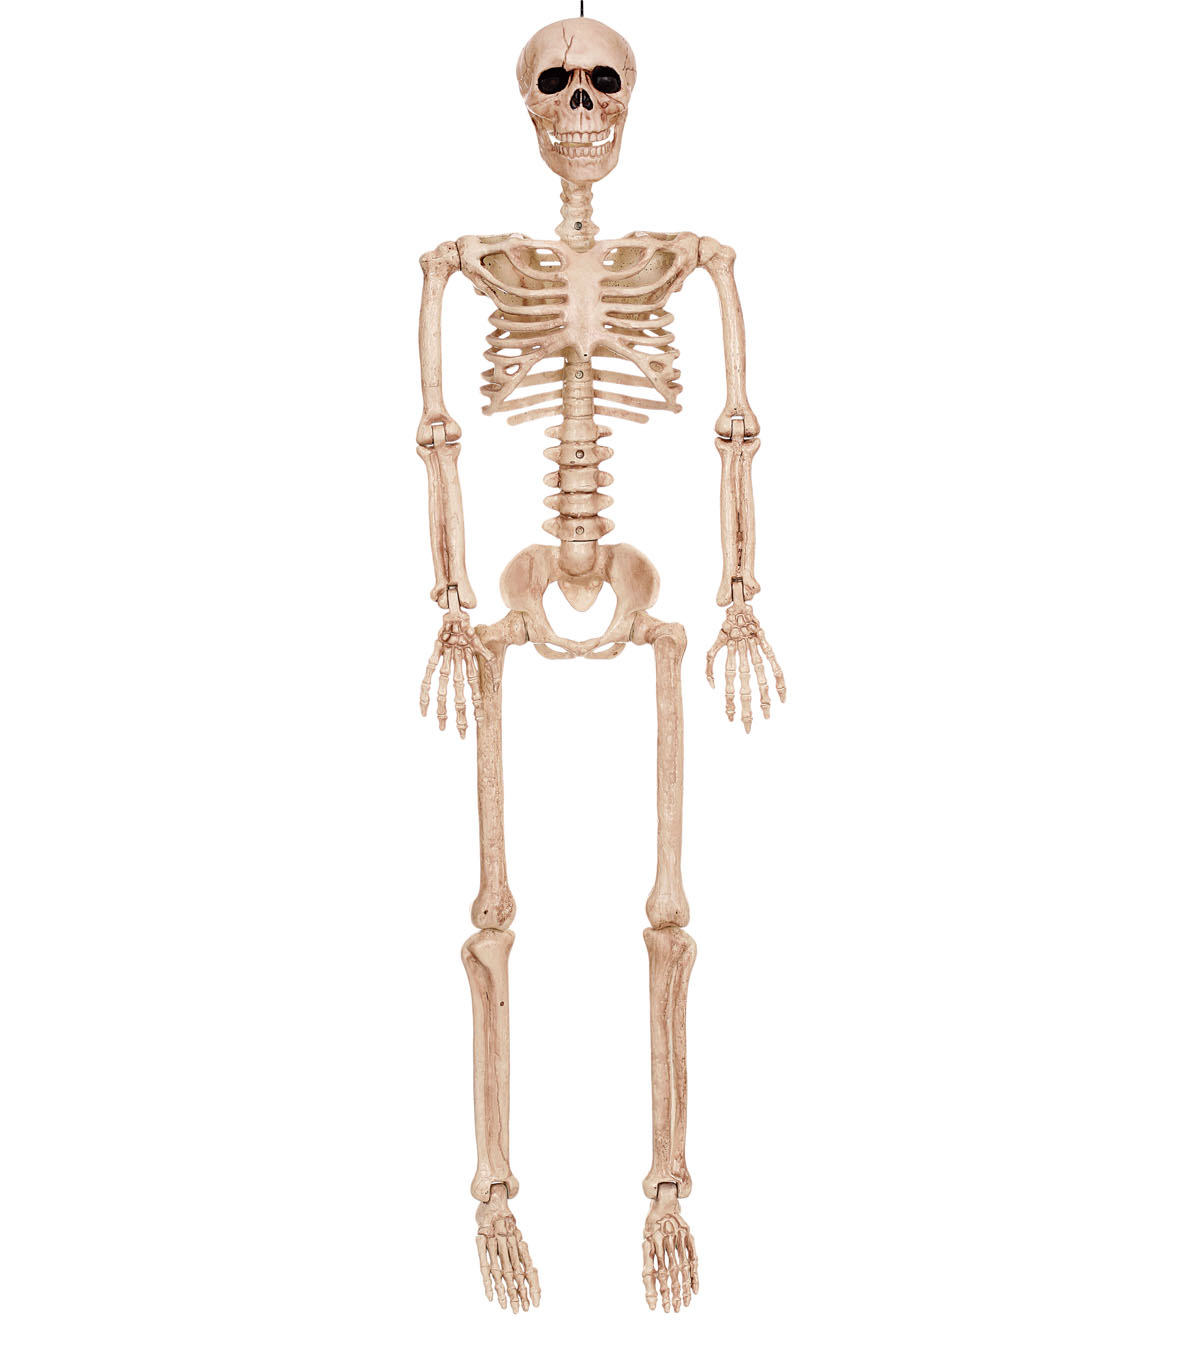 The Boneyard Halloween 36\u0027\u0027 Posable Skeleton